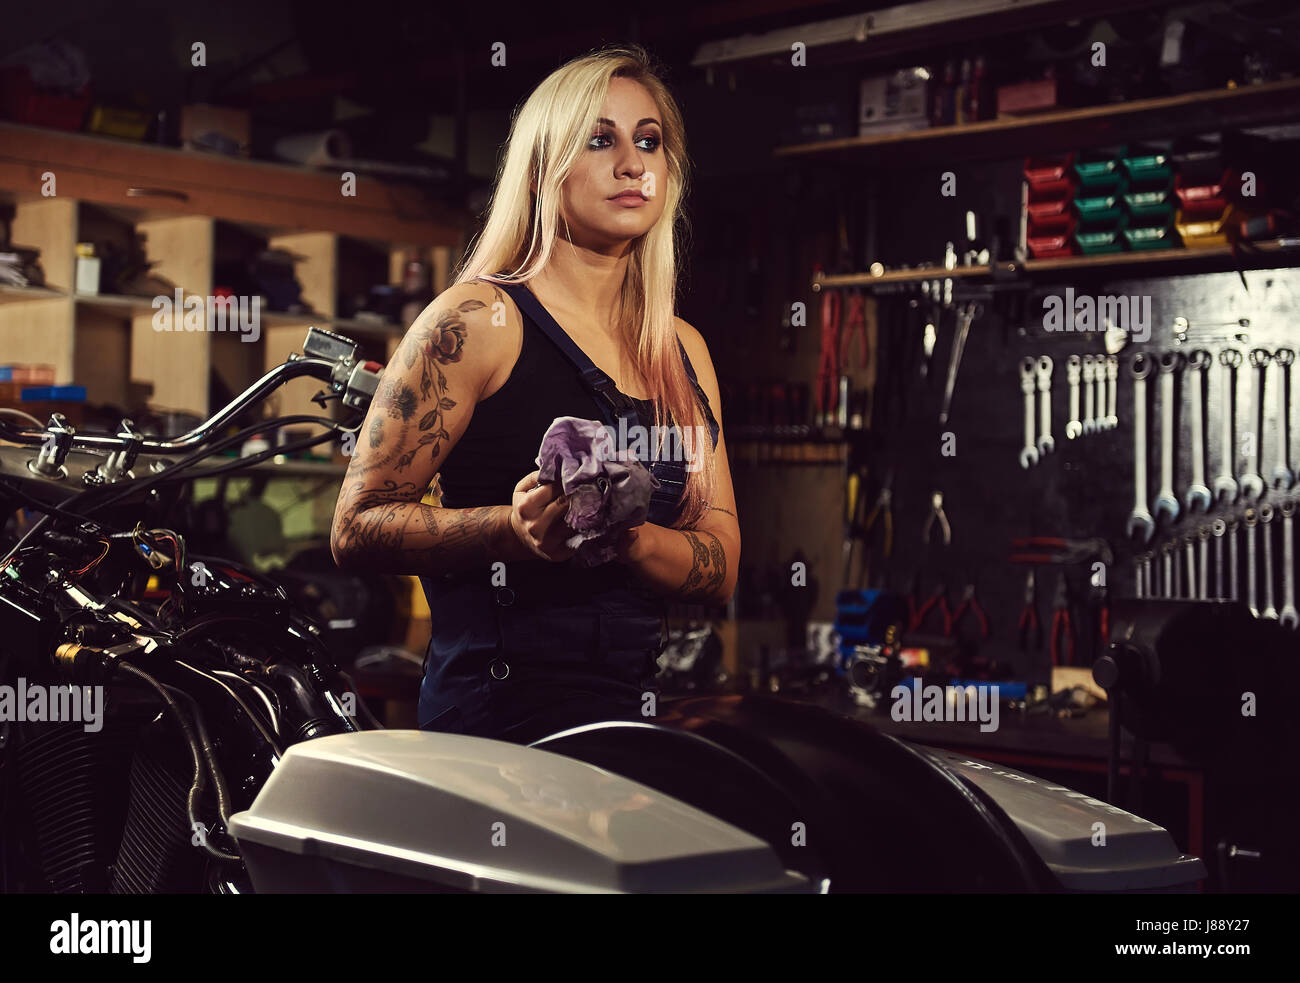 Blond woman mechanic in a motorcycle workshop - Stock Image